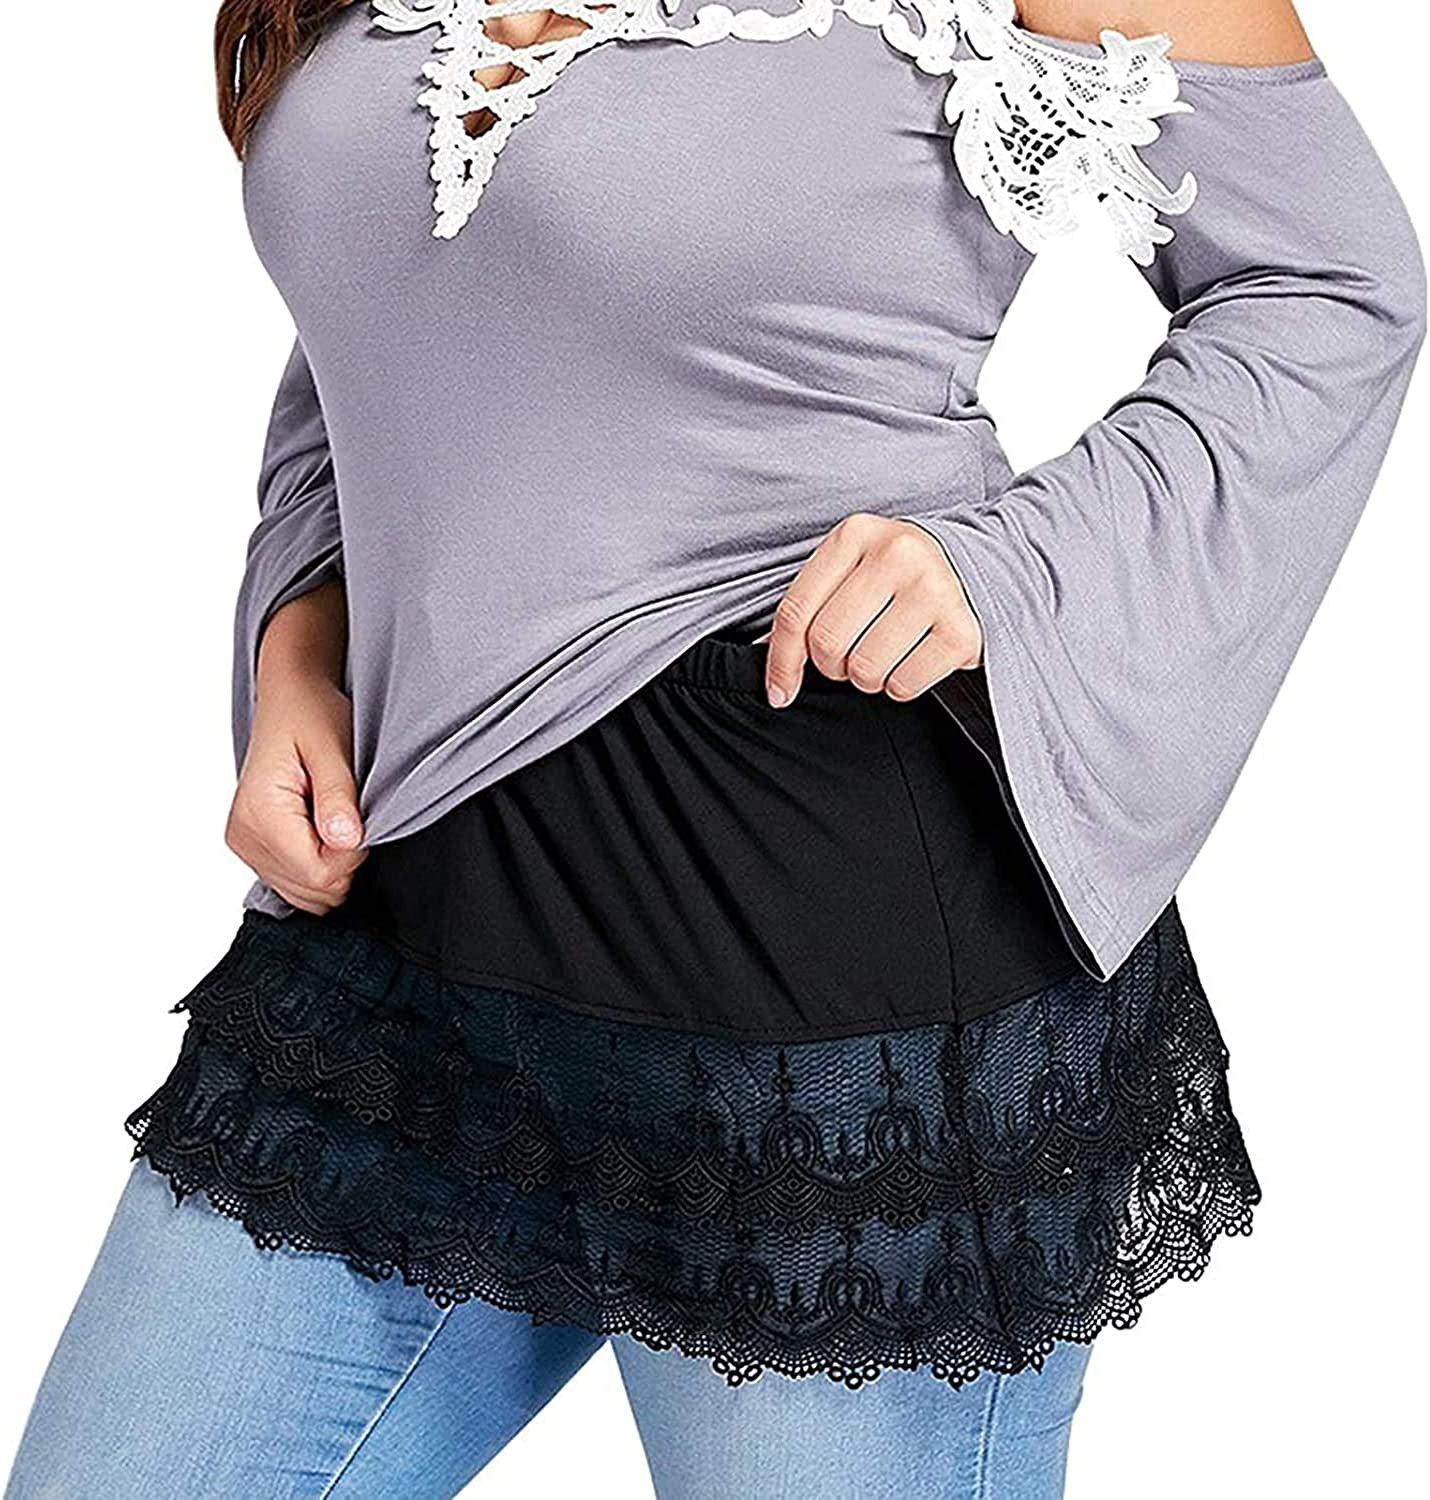 Women 's Shirt Extender Skirt At the price of surprise Adjustable Fake Layered Lower Cheap SALE Start Top